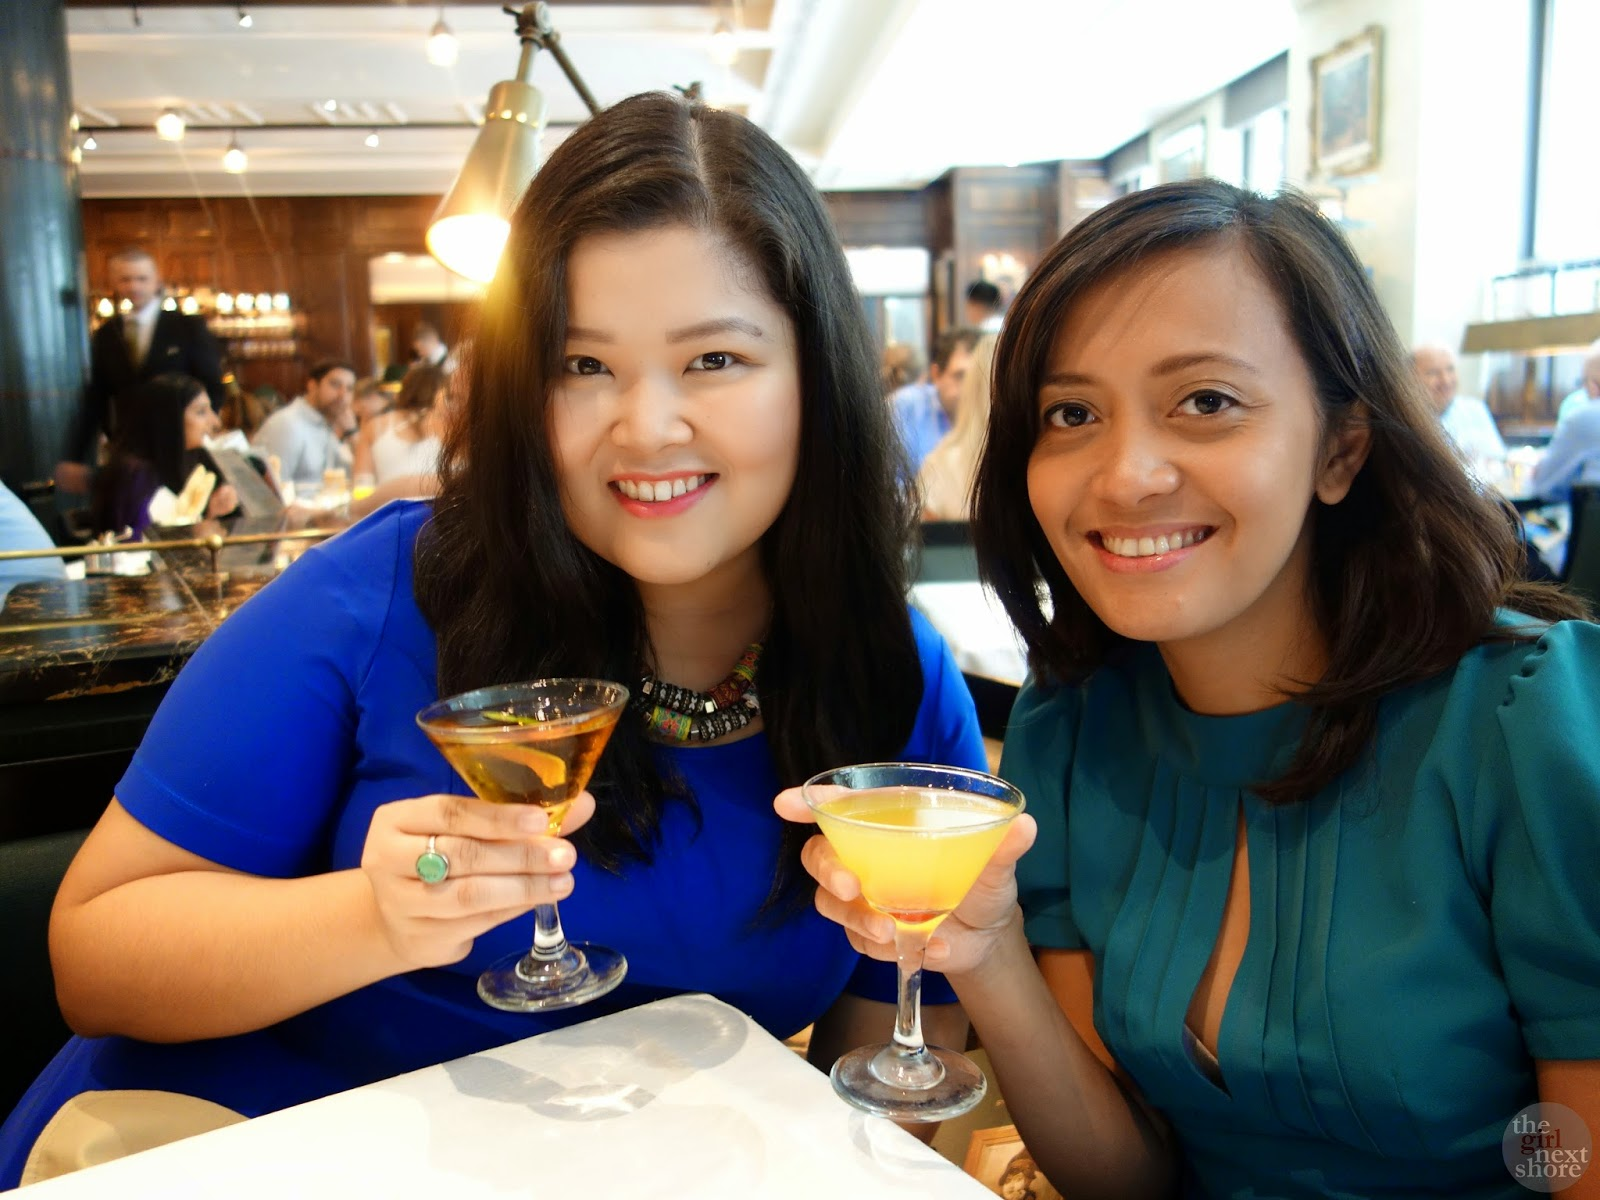 Brunch at The Delaunay: where the ladies got a bit cheeky